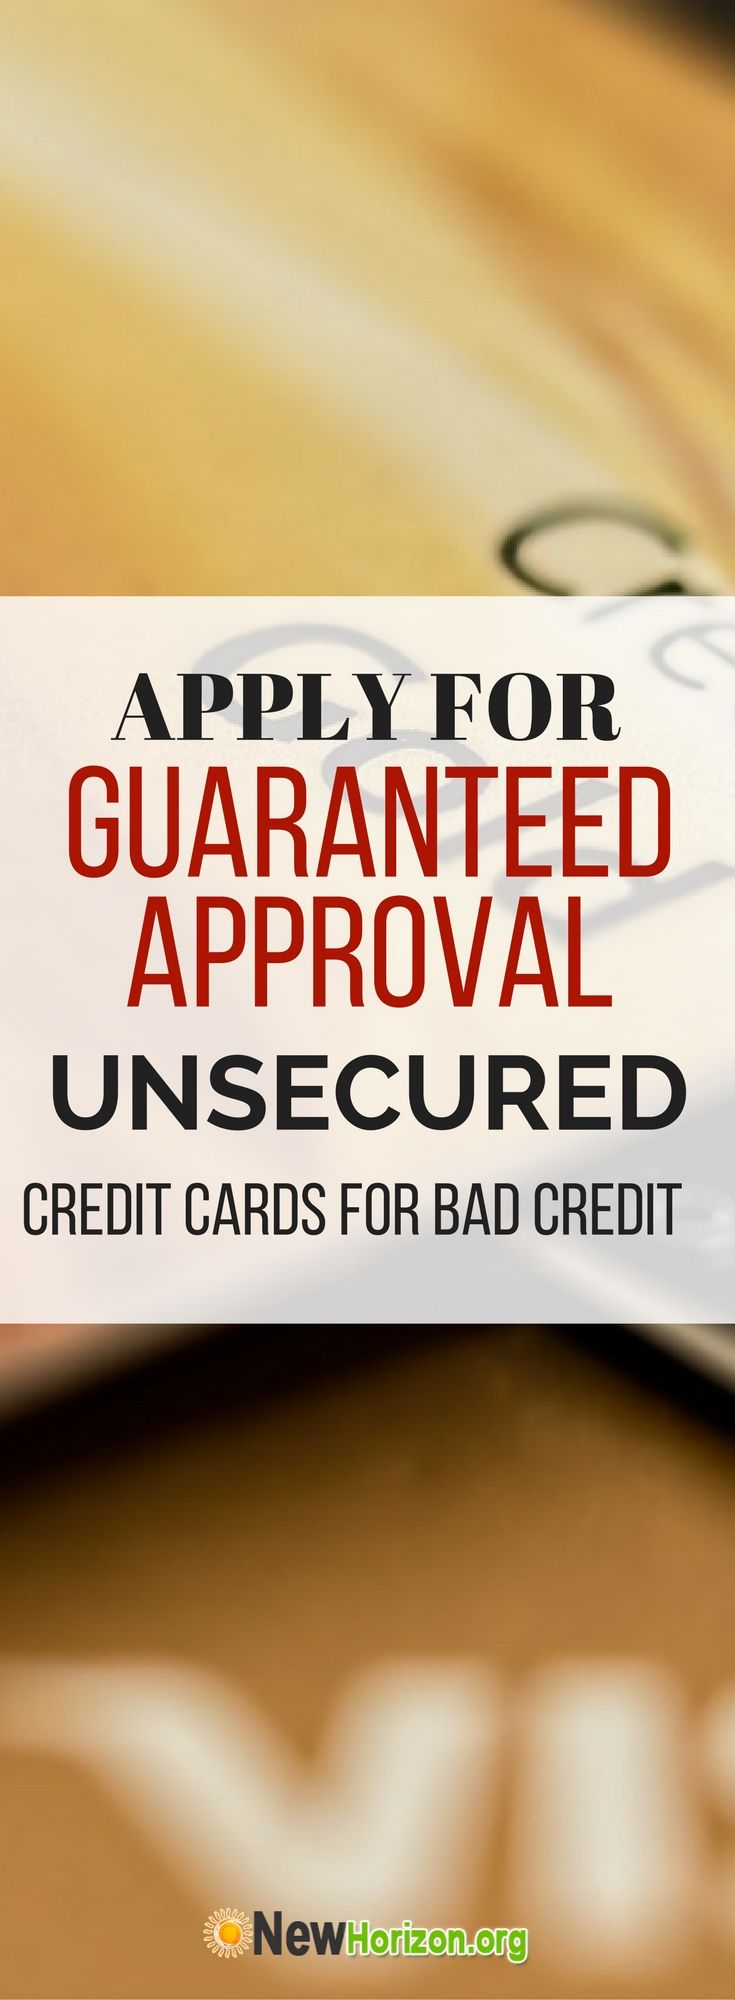 guaranteed unsecured credit card approval for bad credit